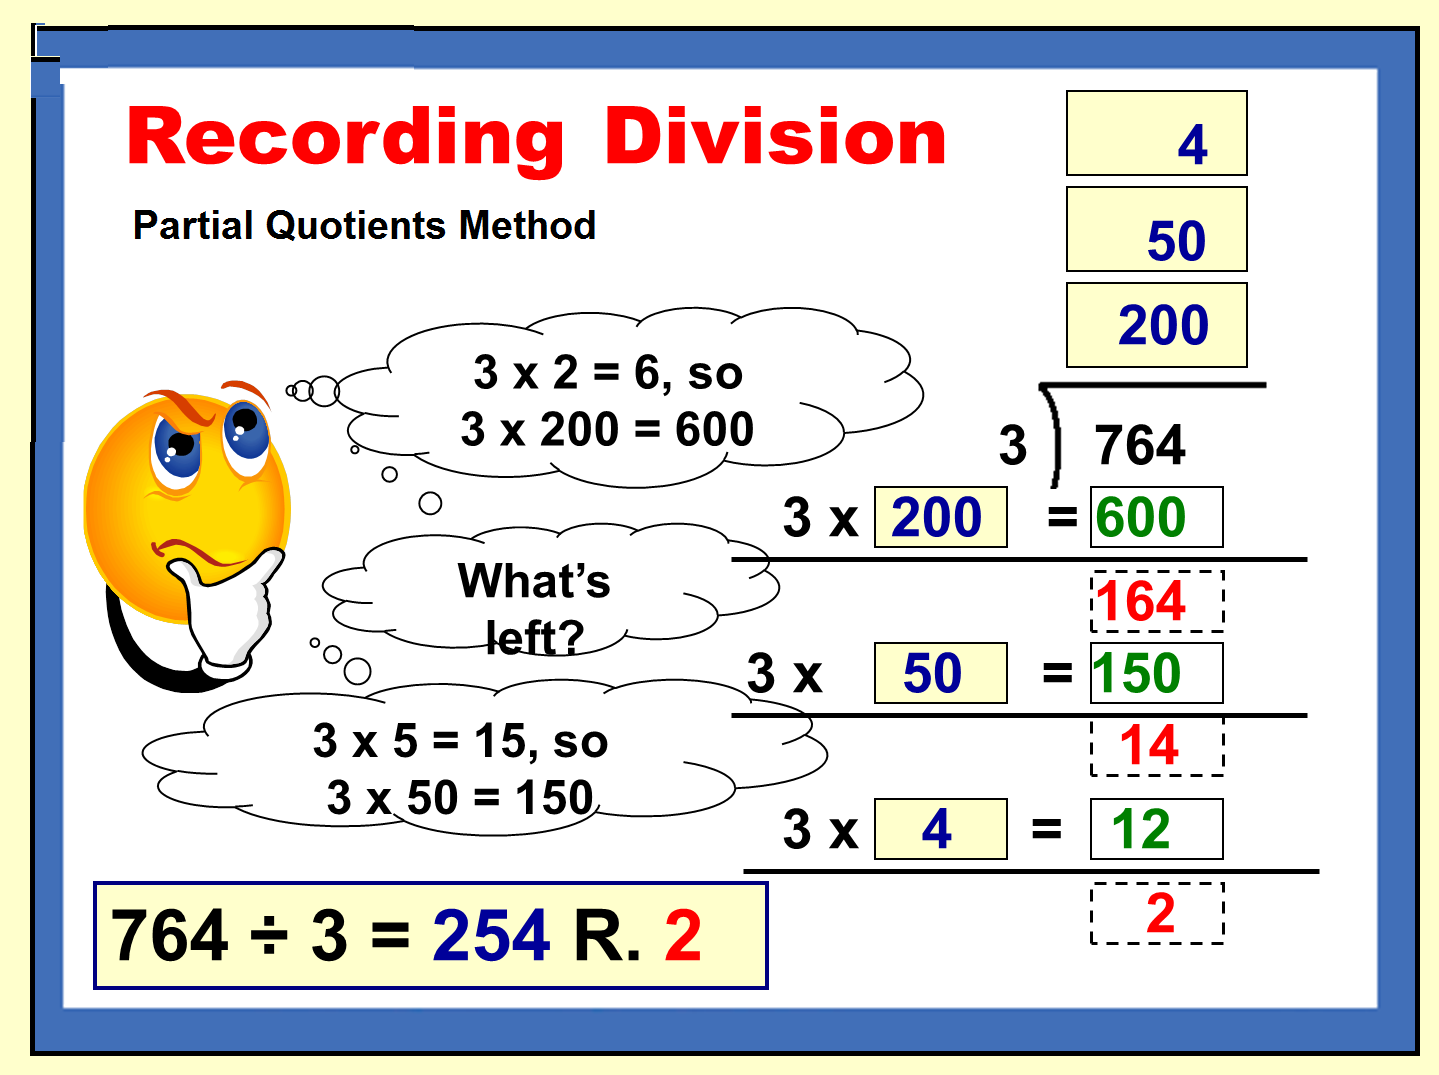 hight resolution of Partial Quotients Worksheets   Printable Worksheets and Activities for  Teachers